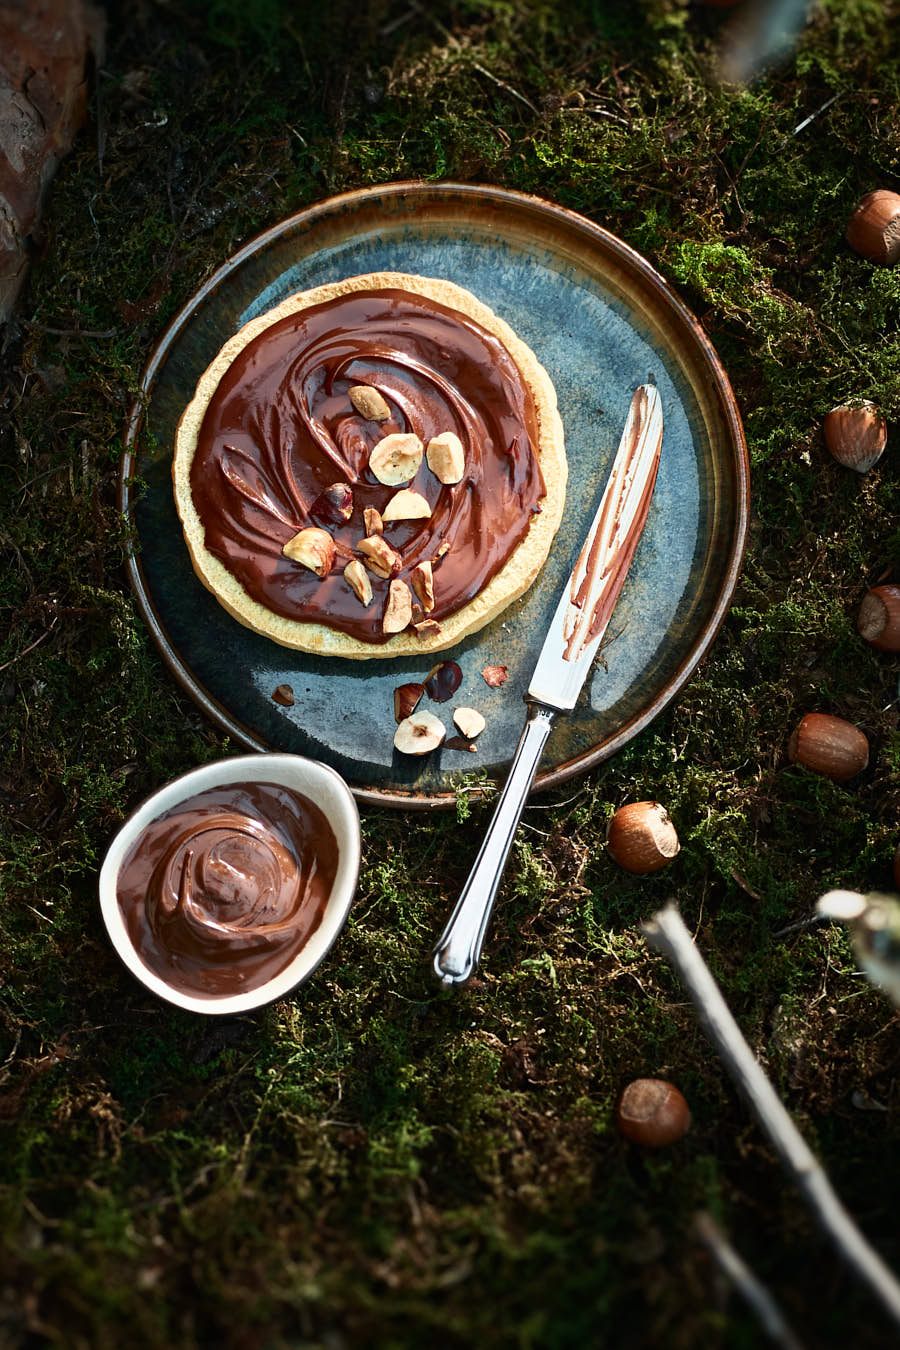 Hazelnut chocolate cream on bread lying on a plate with a knife food editorial photography studio delicious content Julia Ewers food styling Philipp Burkart photographer Hamburg